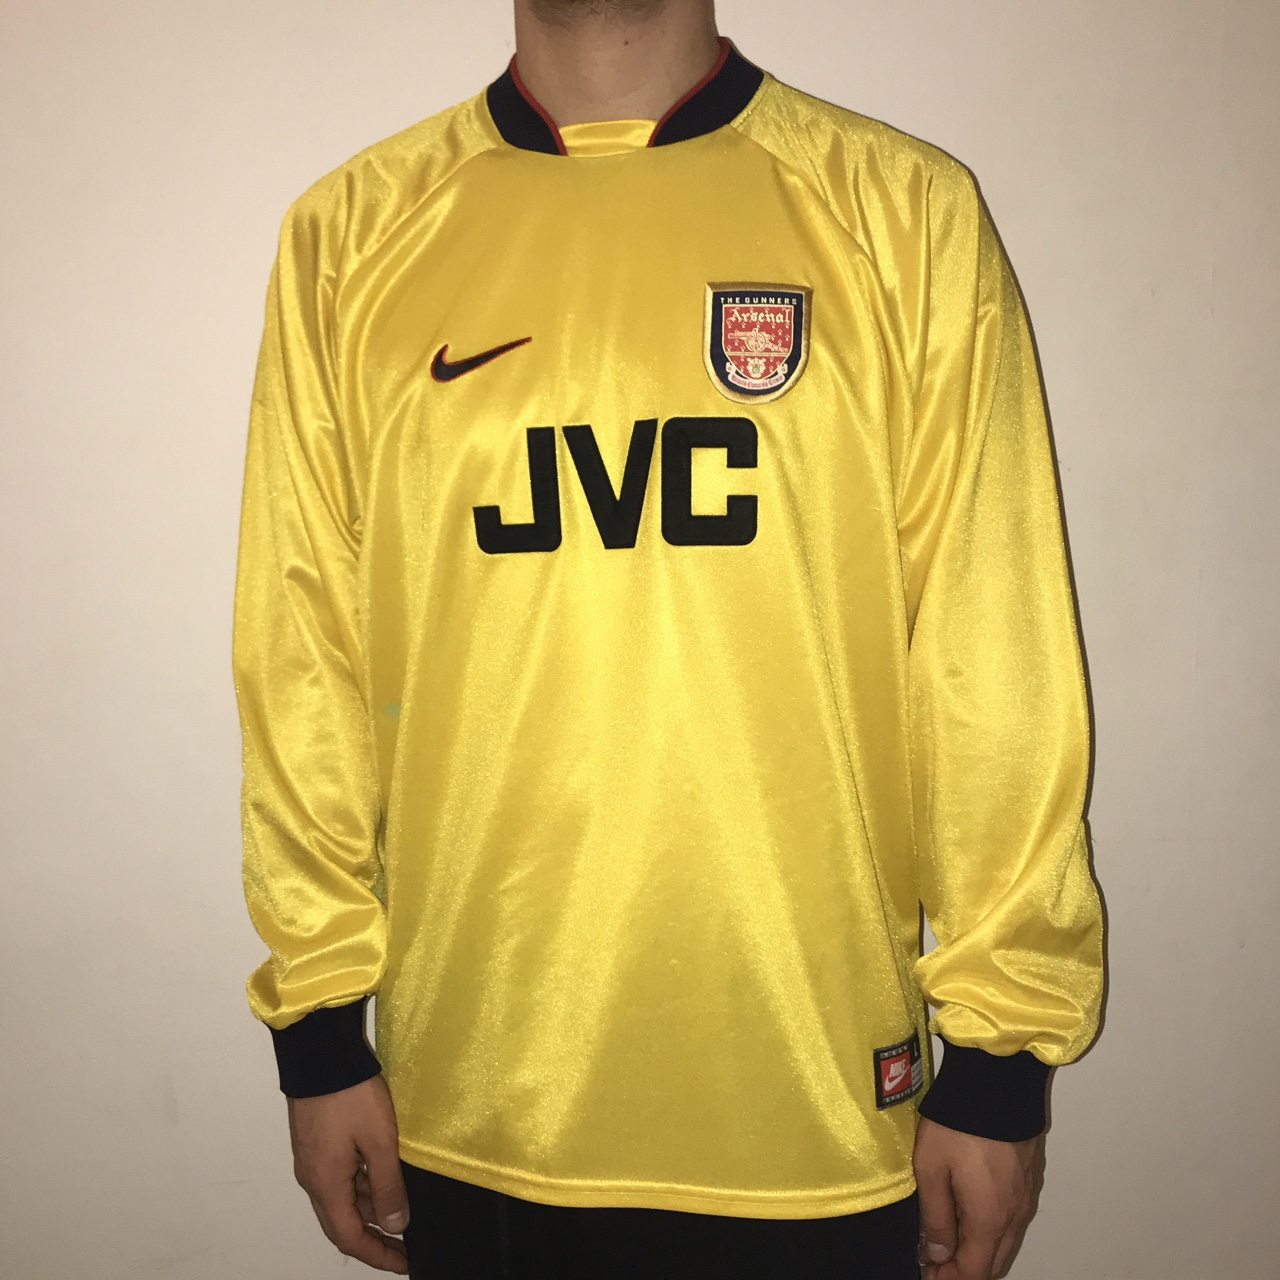 super popular 871e9 b8b02 Nike Arsenal FC Long Sleeve Yellow Goalkeeper Jersey ...